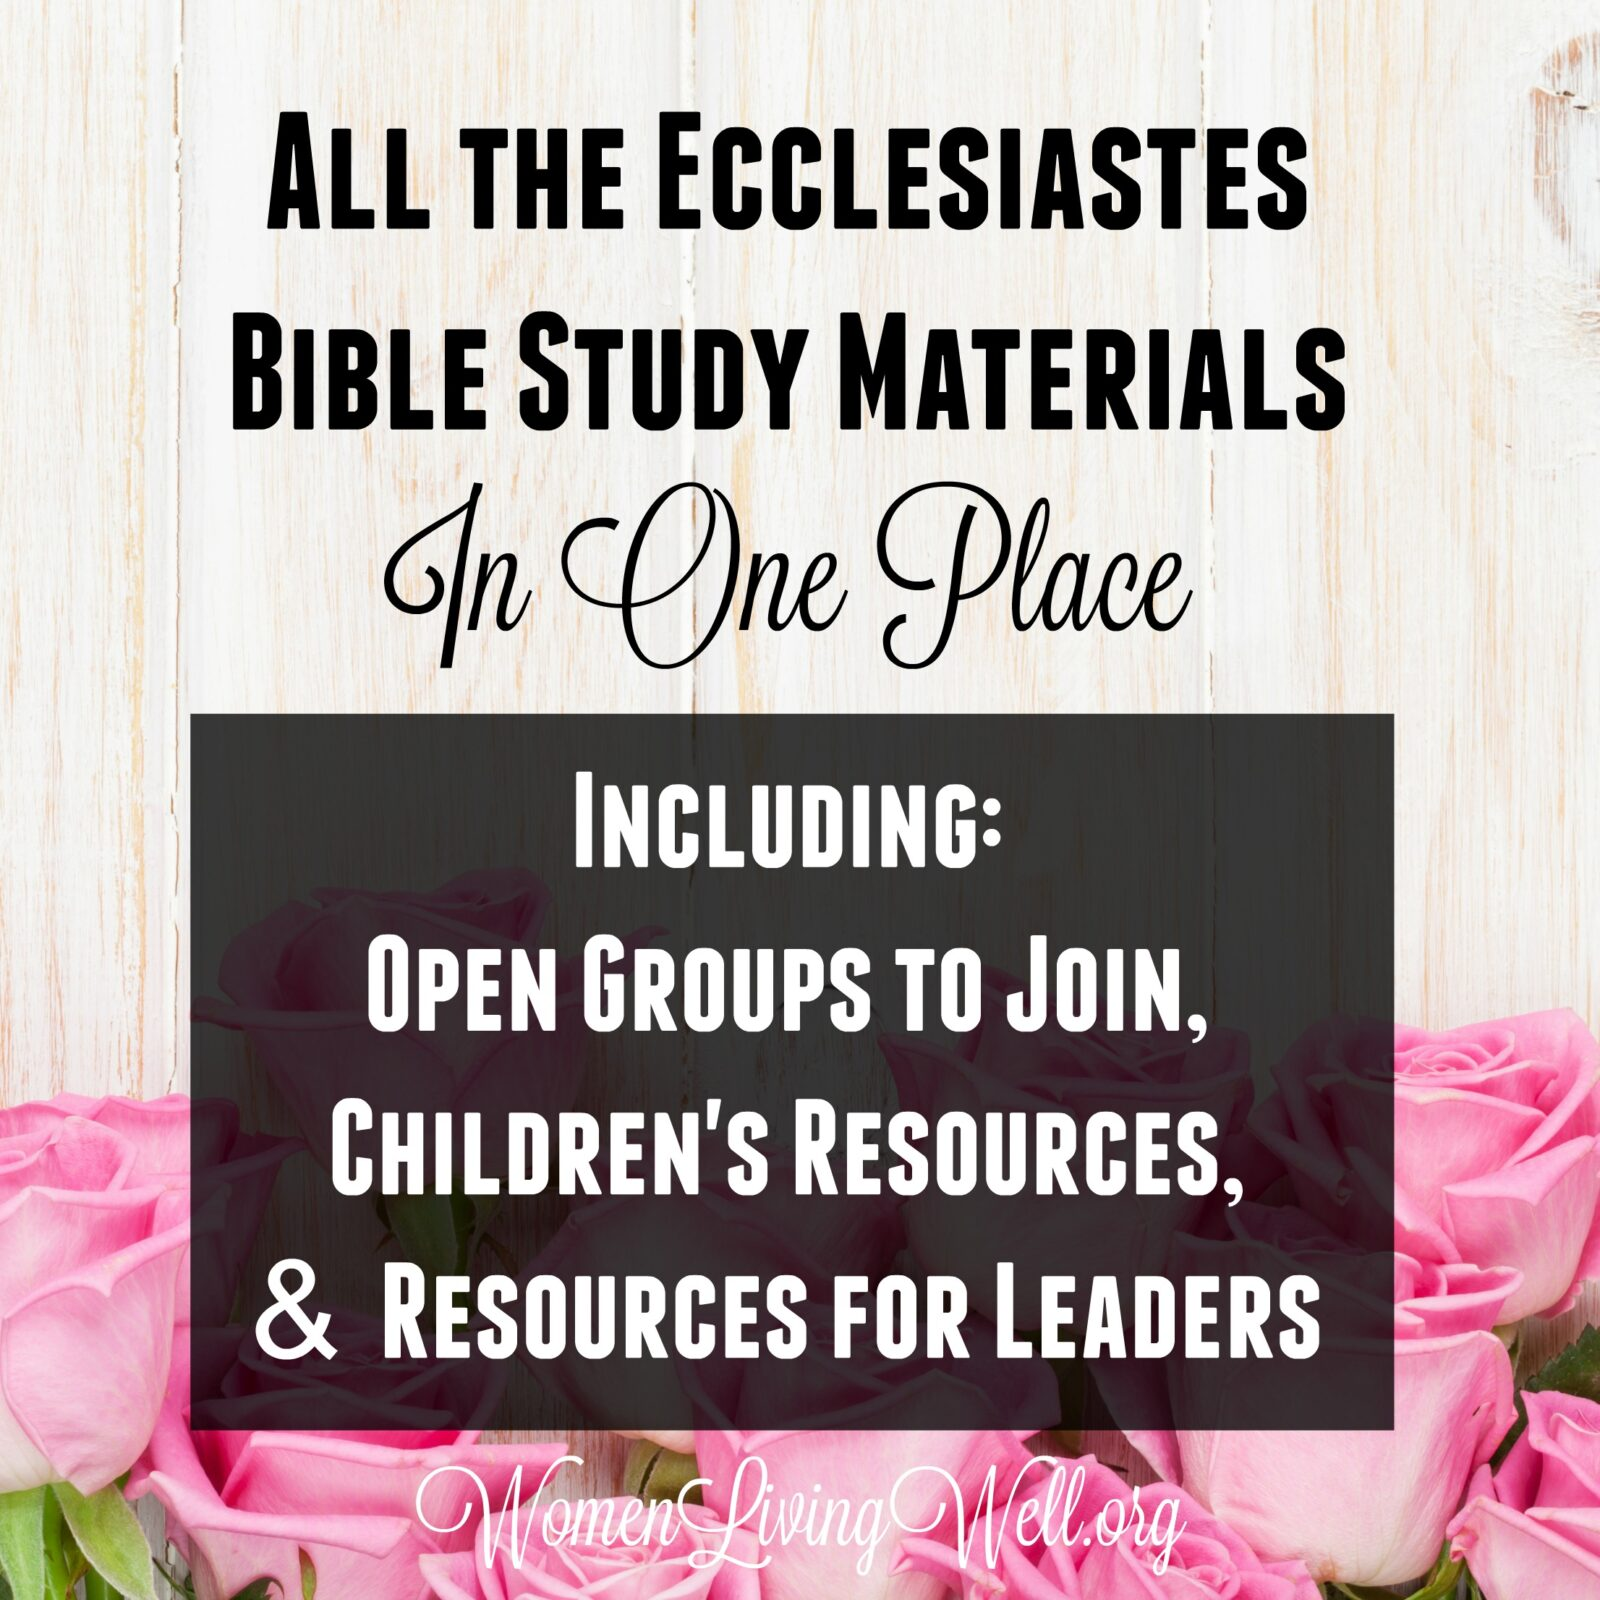 Become a Bible Study Leader - Precept Ministries International